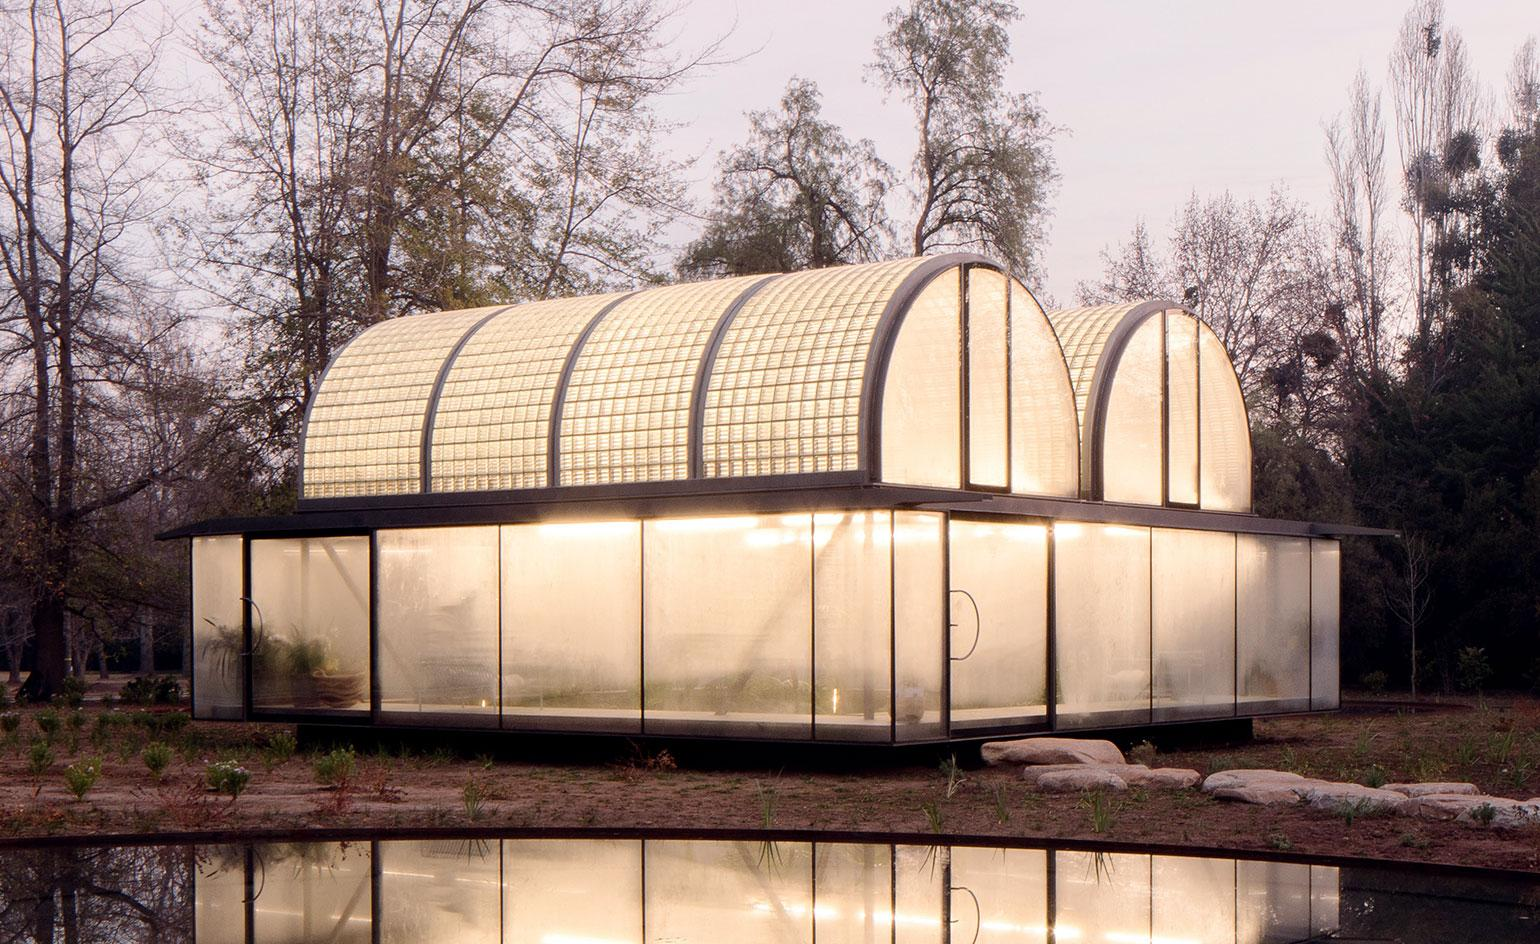 Max Núñez' greenhouse in Chile gives the impression of a floating glass box